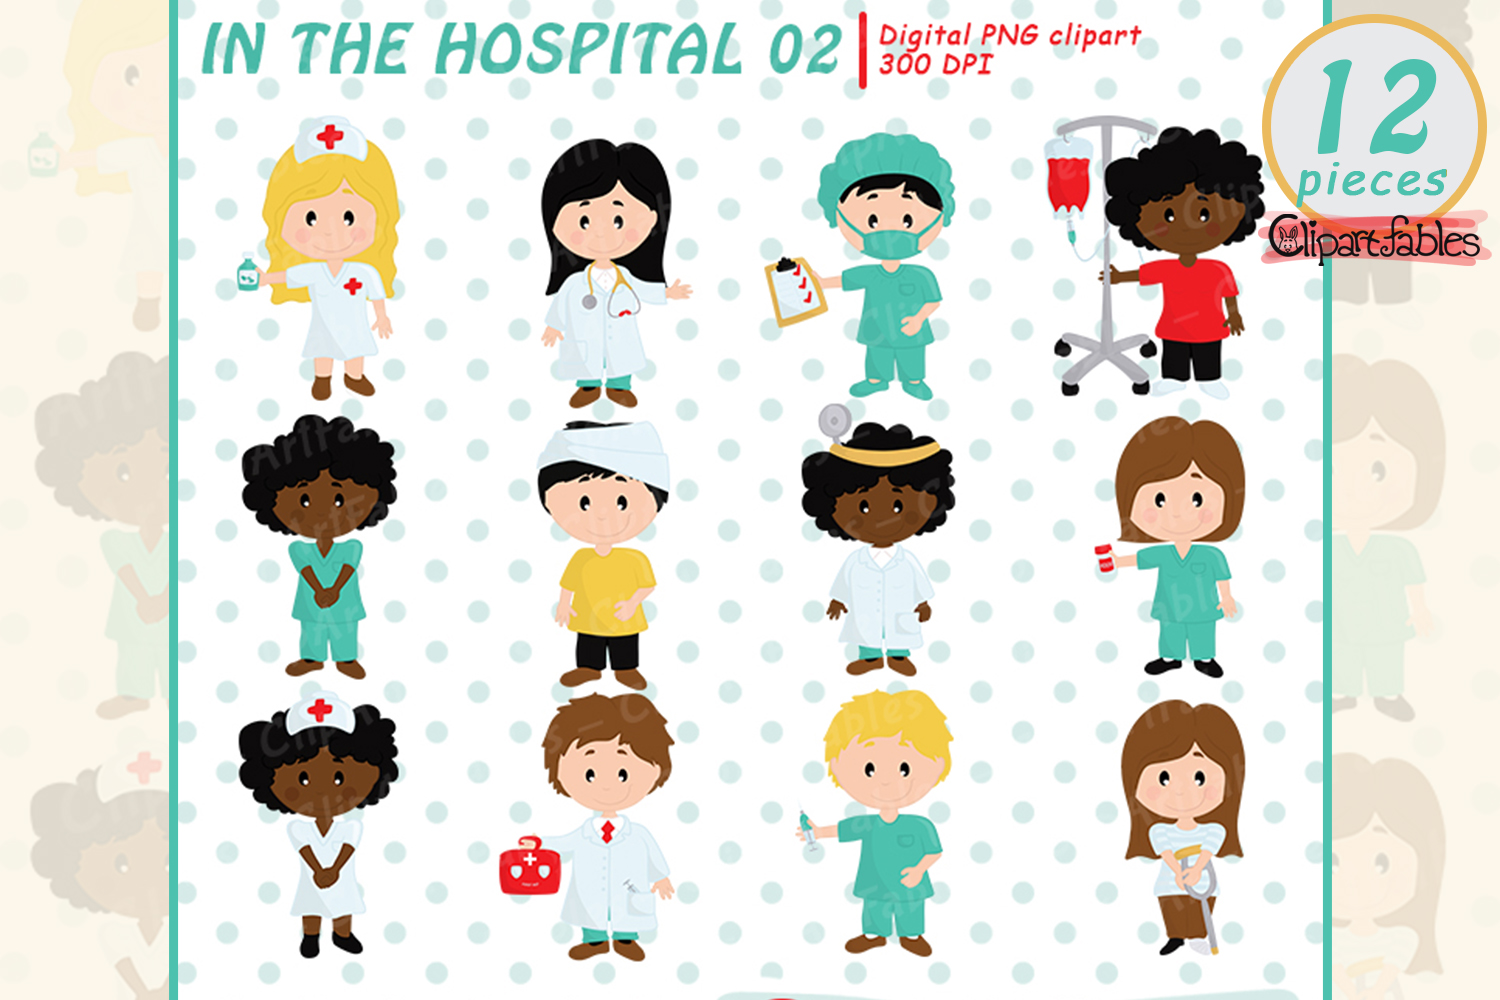 Cute doctor and patient clipart.